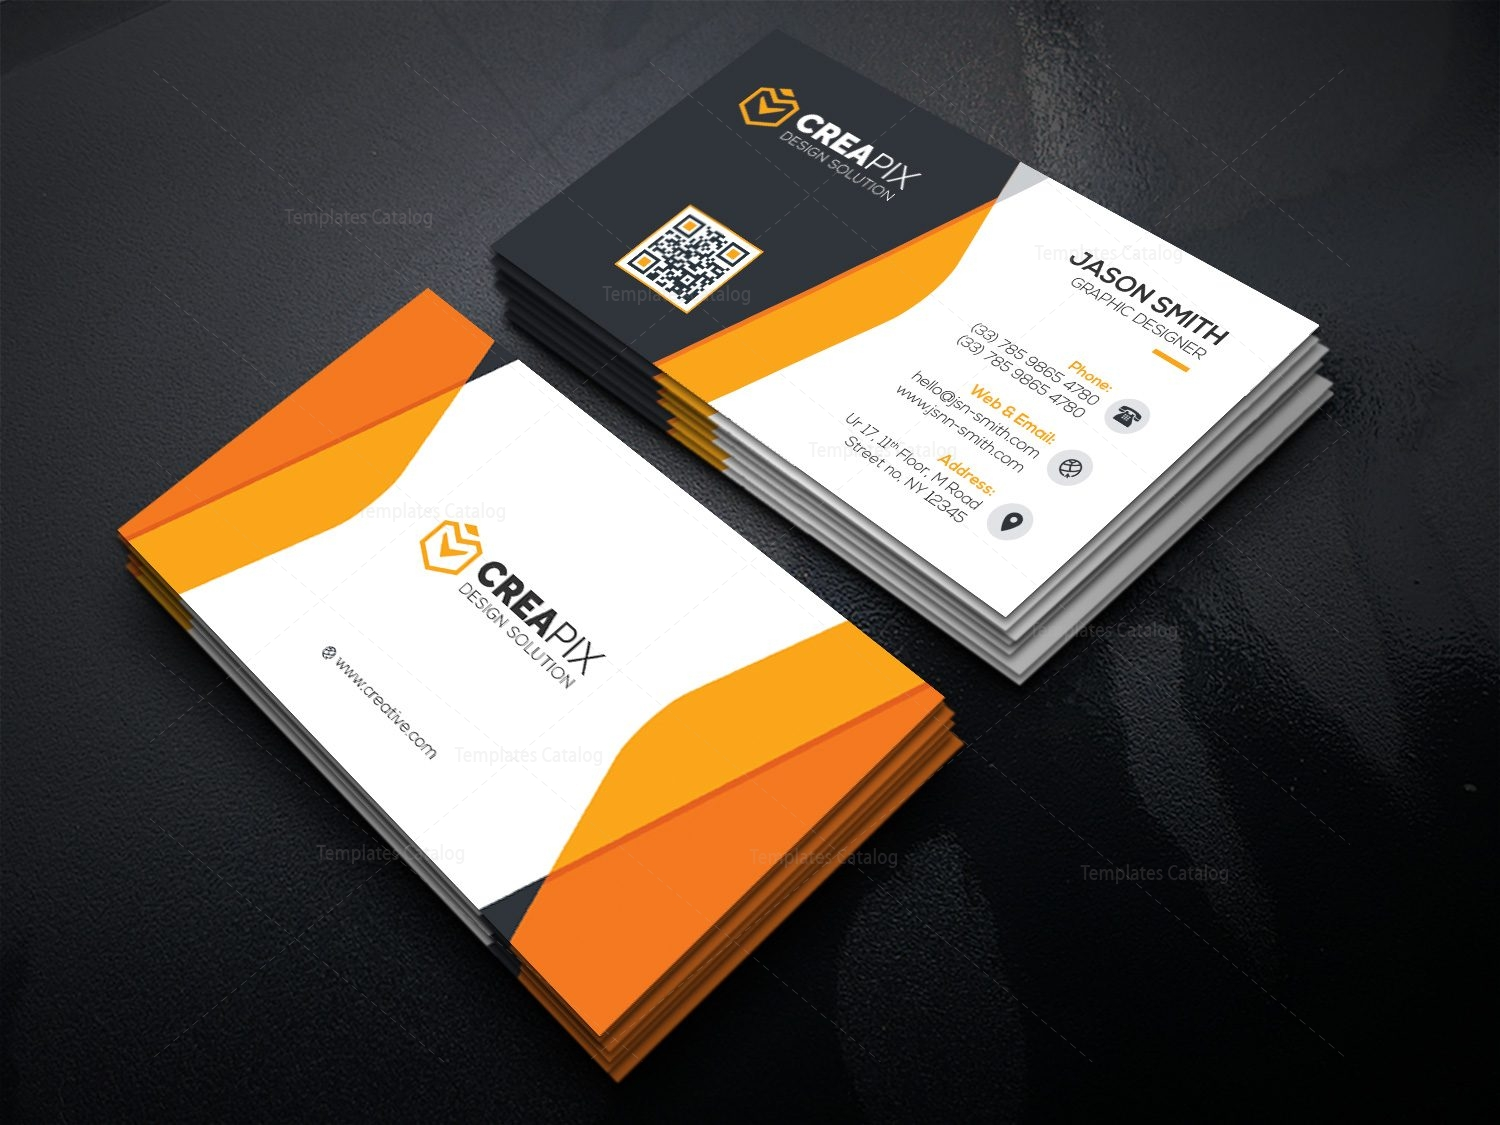 Elegant Business Card with Perfect Design 000515 - Template Catalog